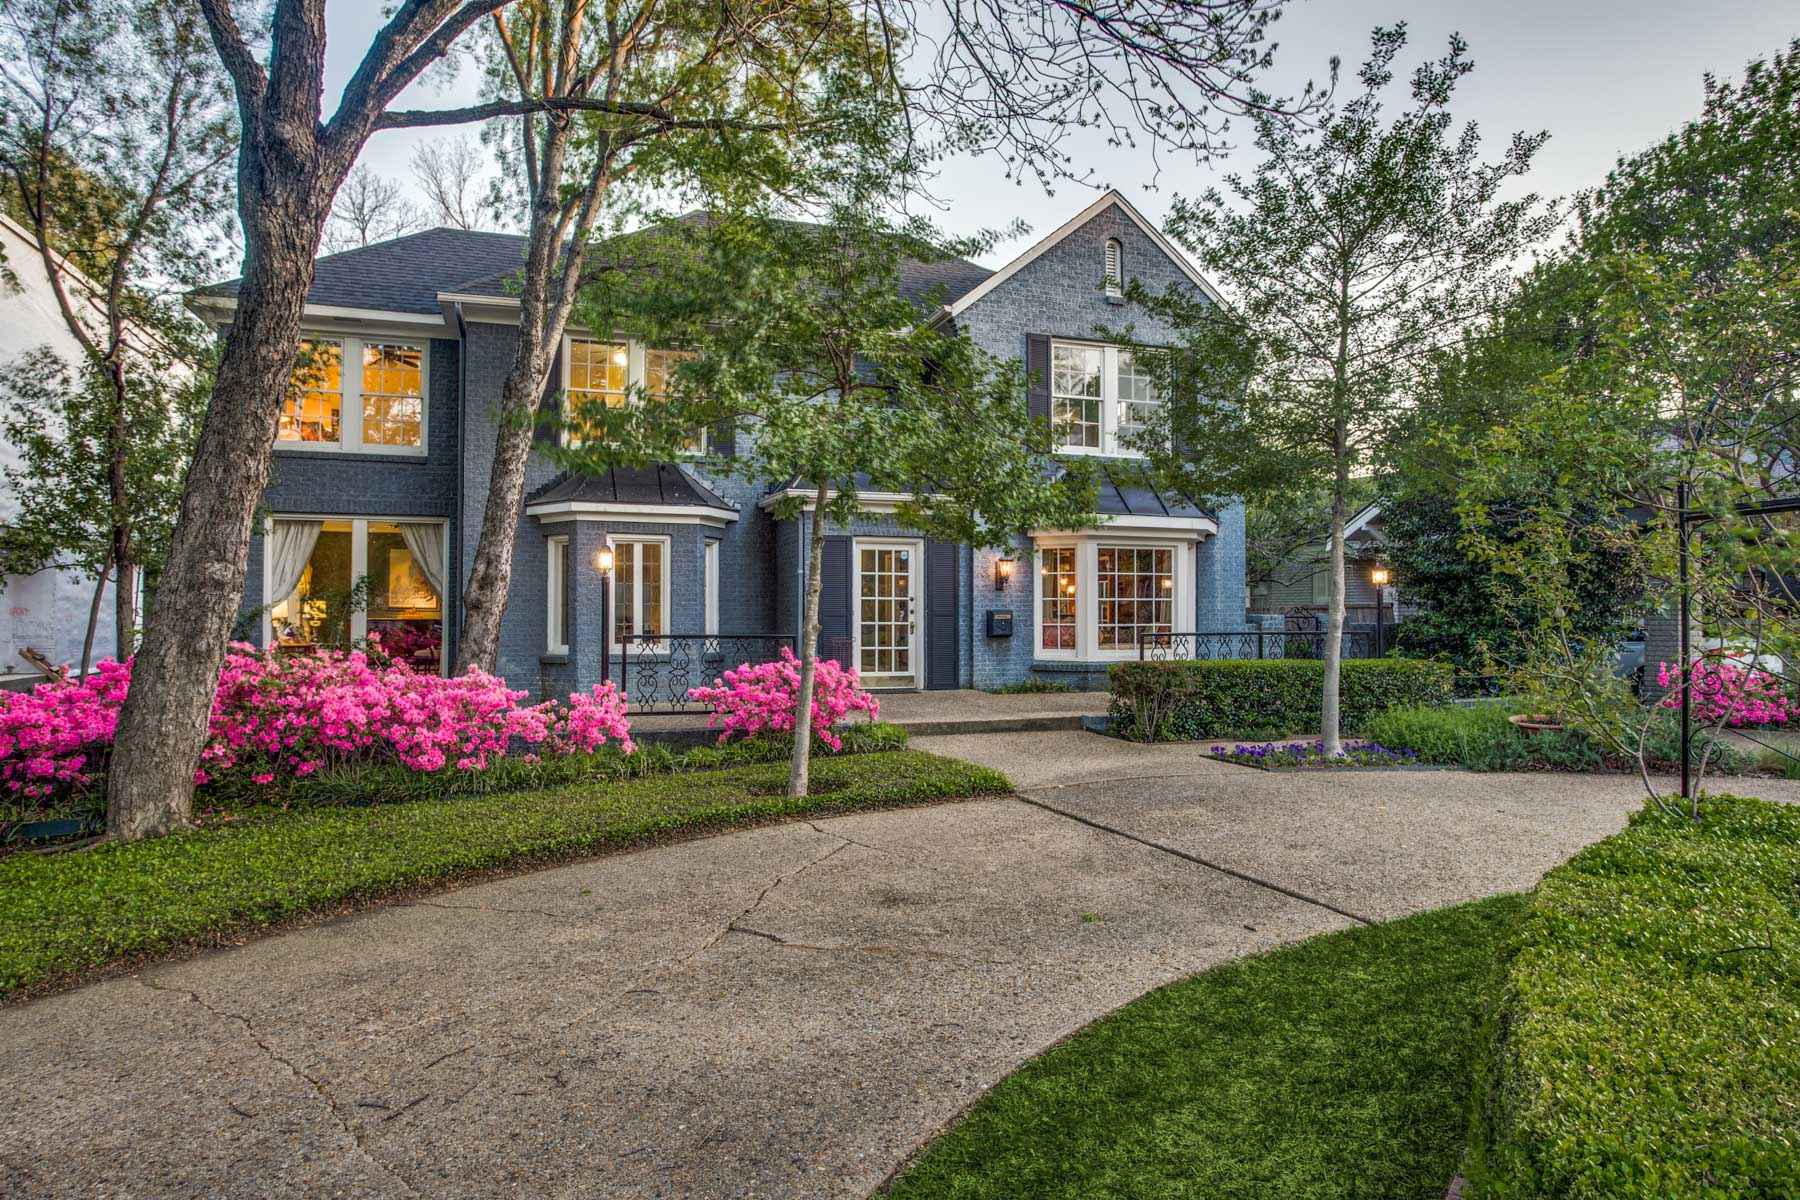 Single Family Home for Sale at Adorable Traditional on Large Lot 3621 Mockingbird Lane, Highland Park, Texas, 75205 United States